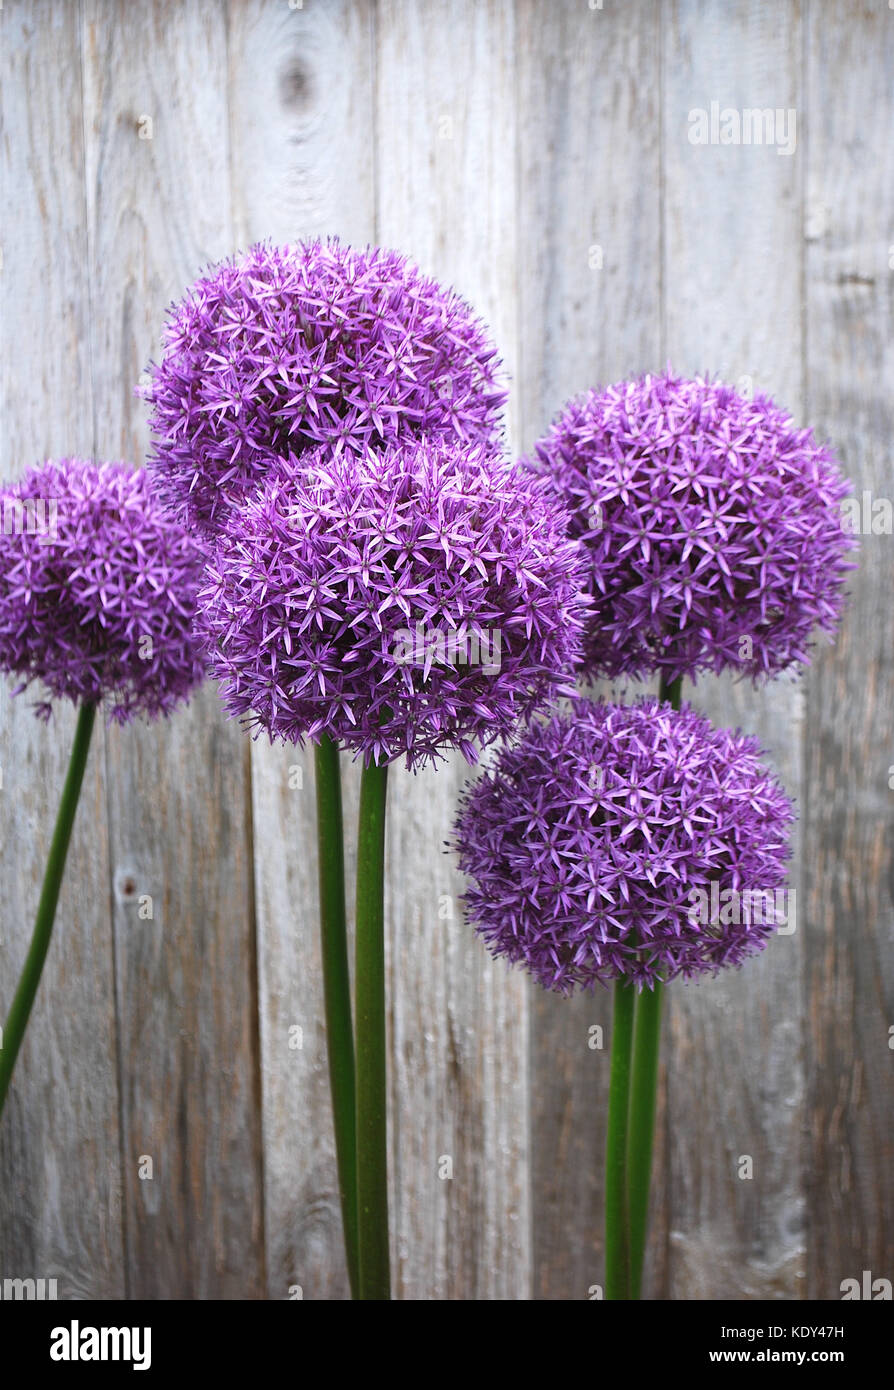 Allium blooming against a weathered fence Stock Photo